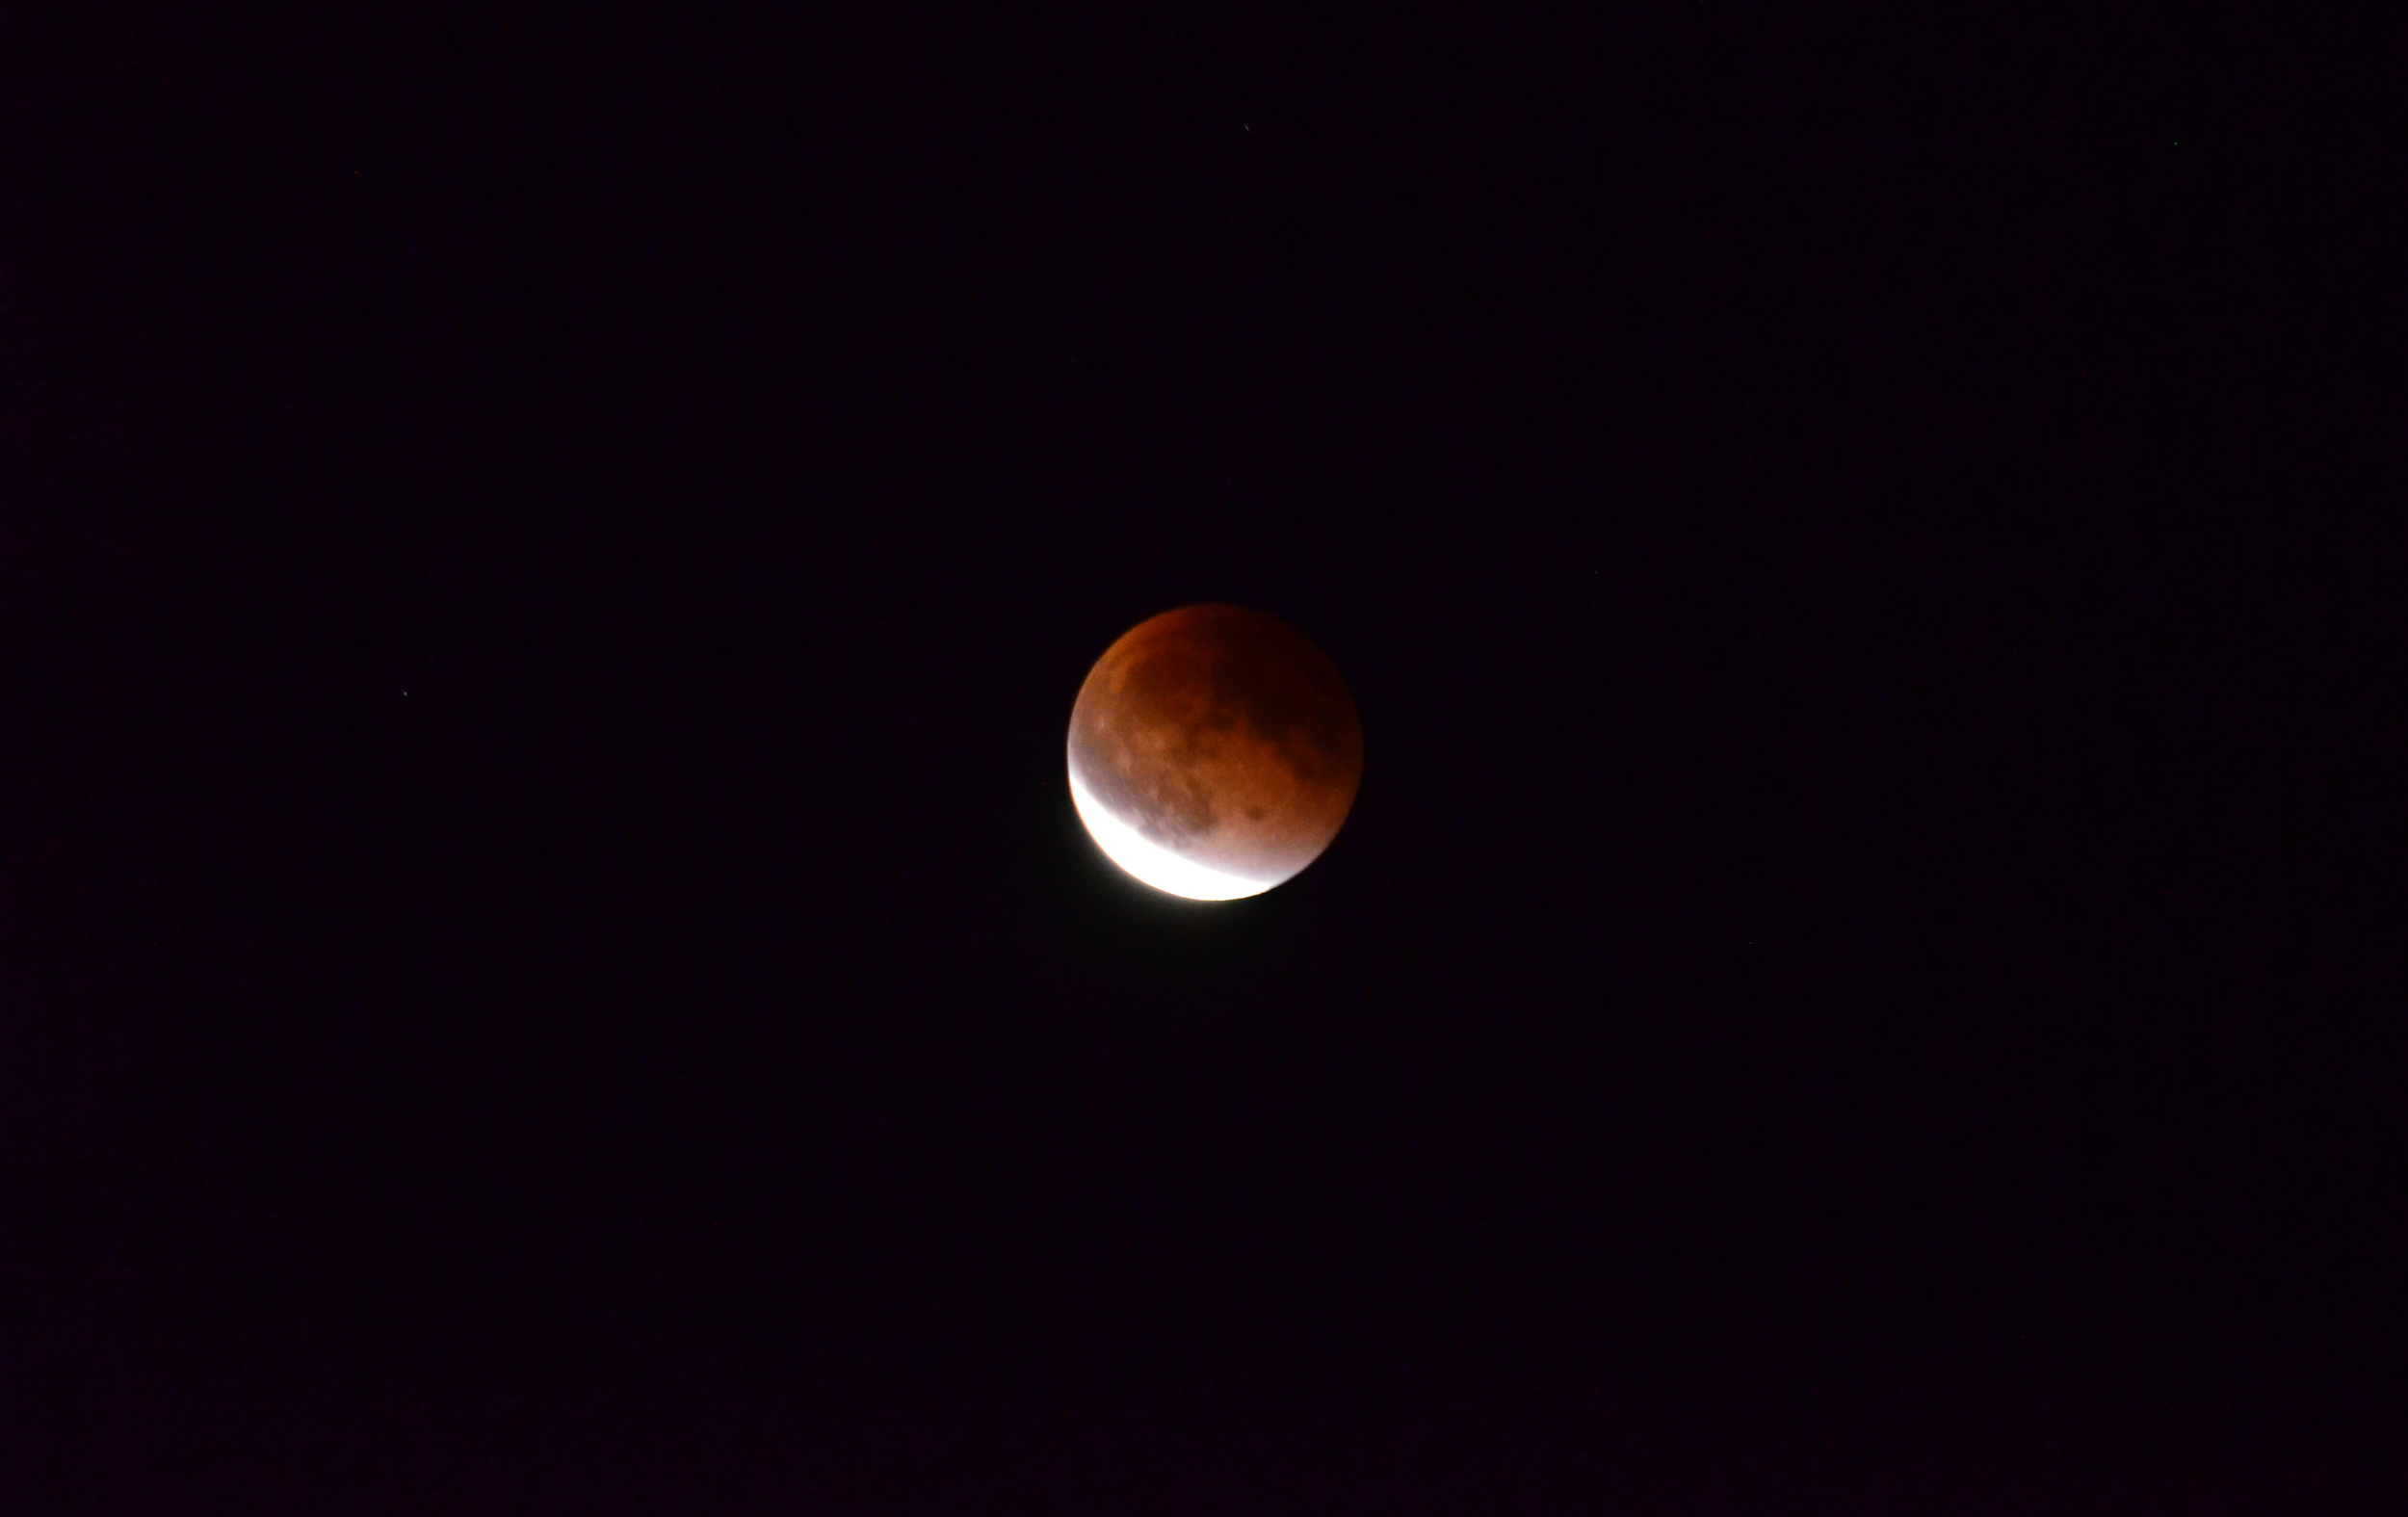 The lunar eclipse we stayed up to see last September.